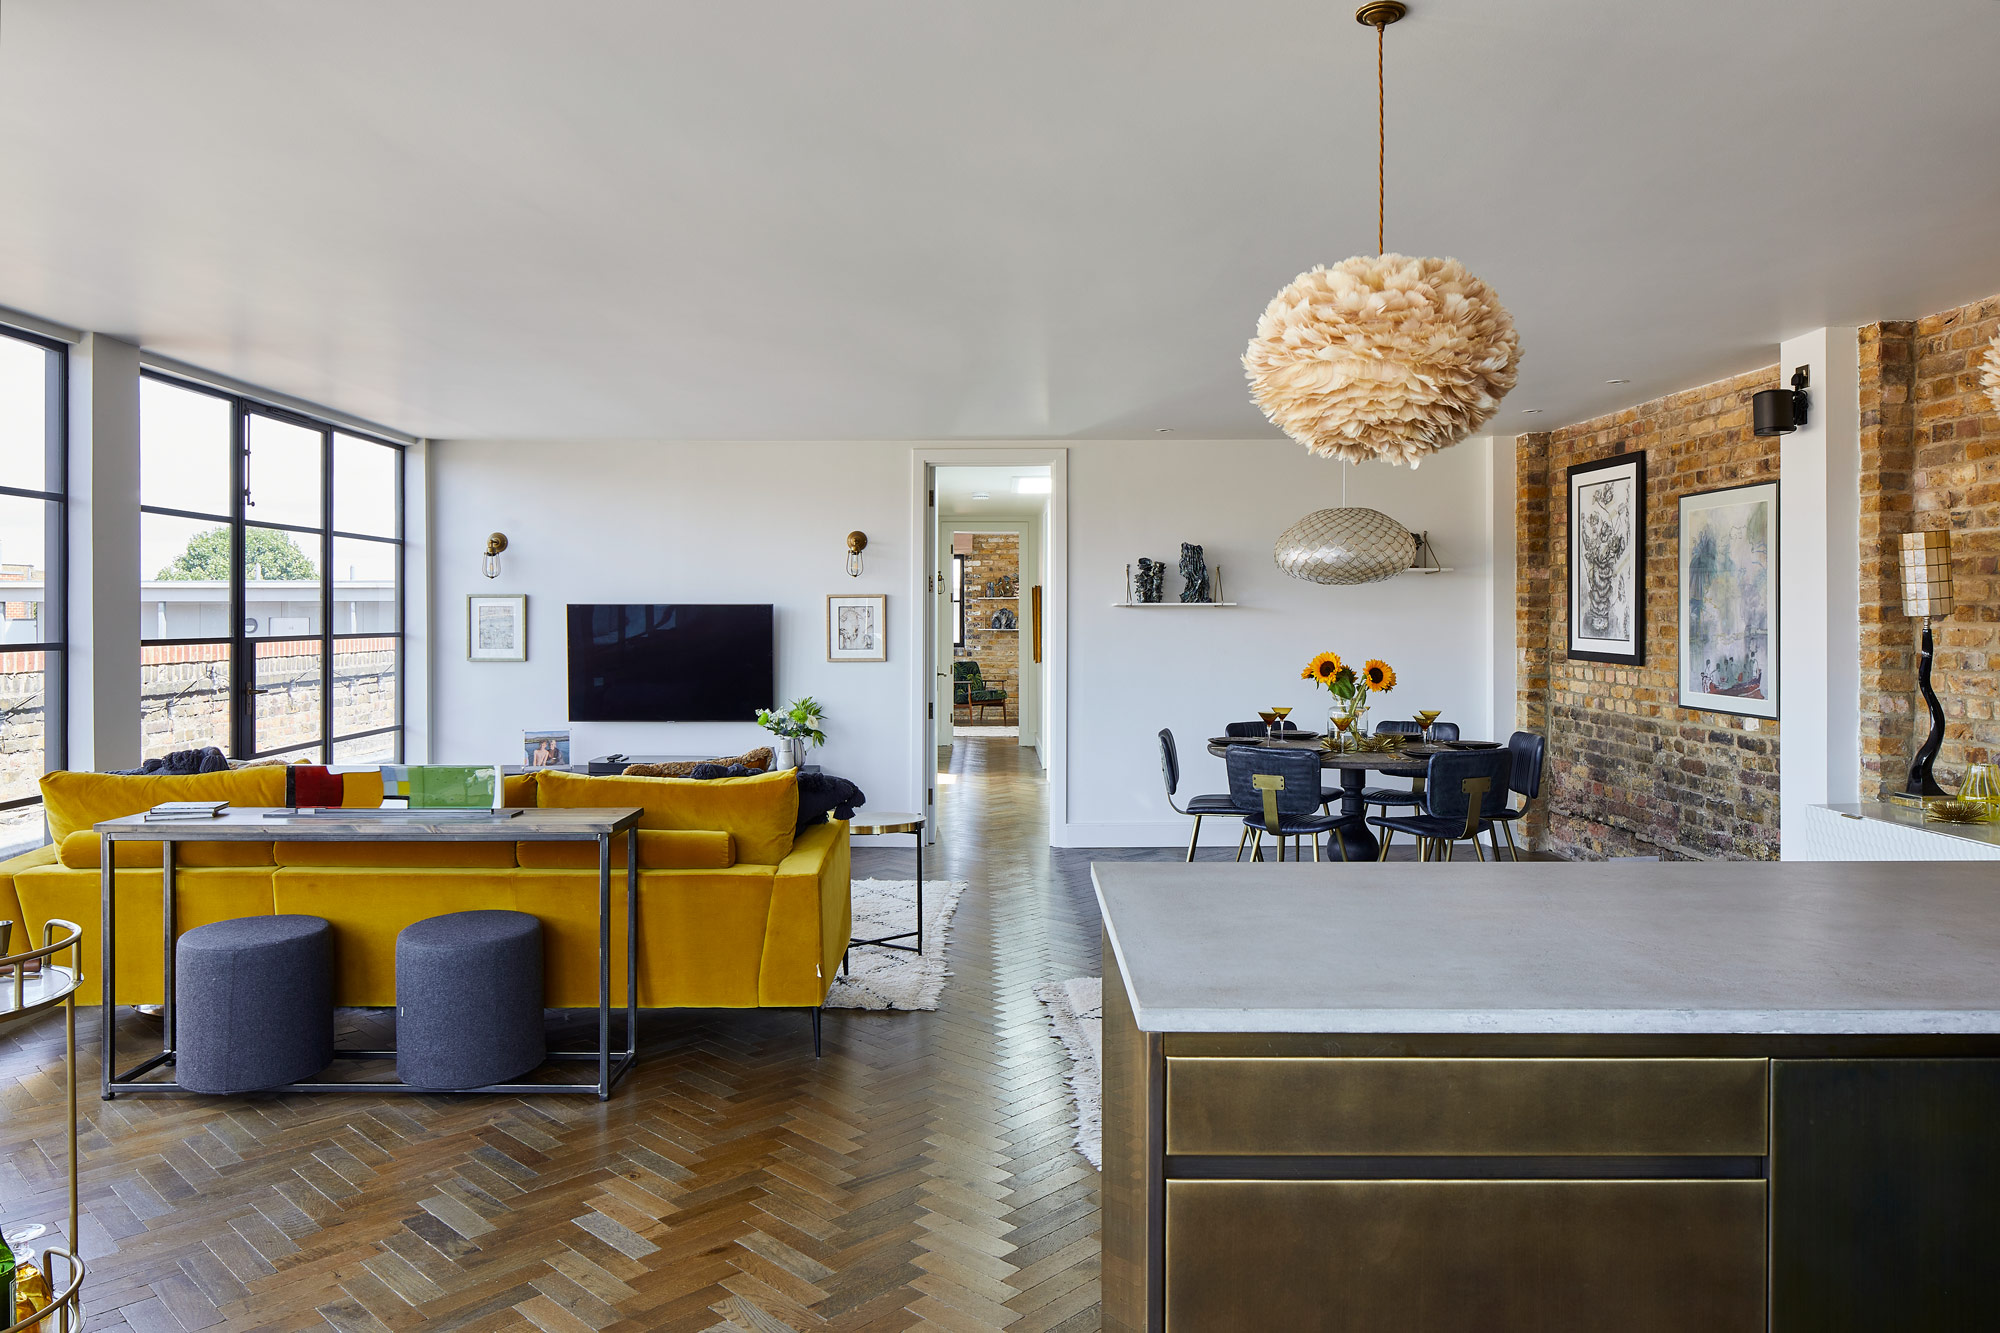 Open plan kitchen, living and dining area with metal kitchen and yellow sofa